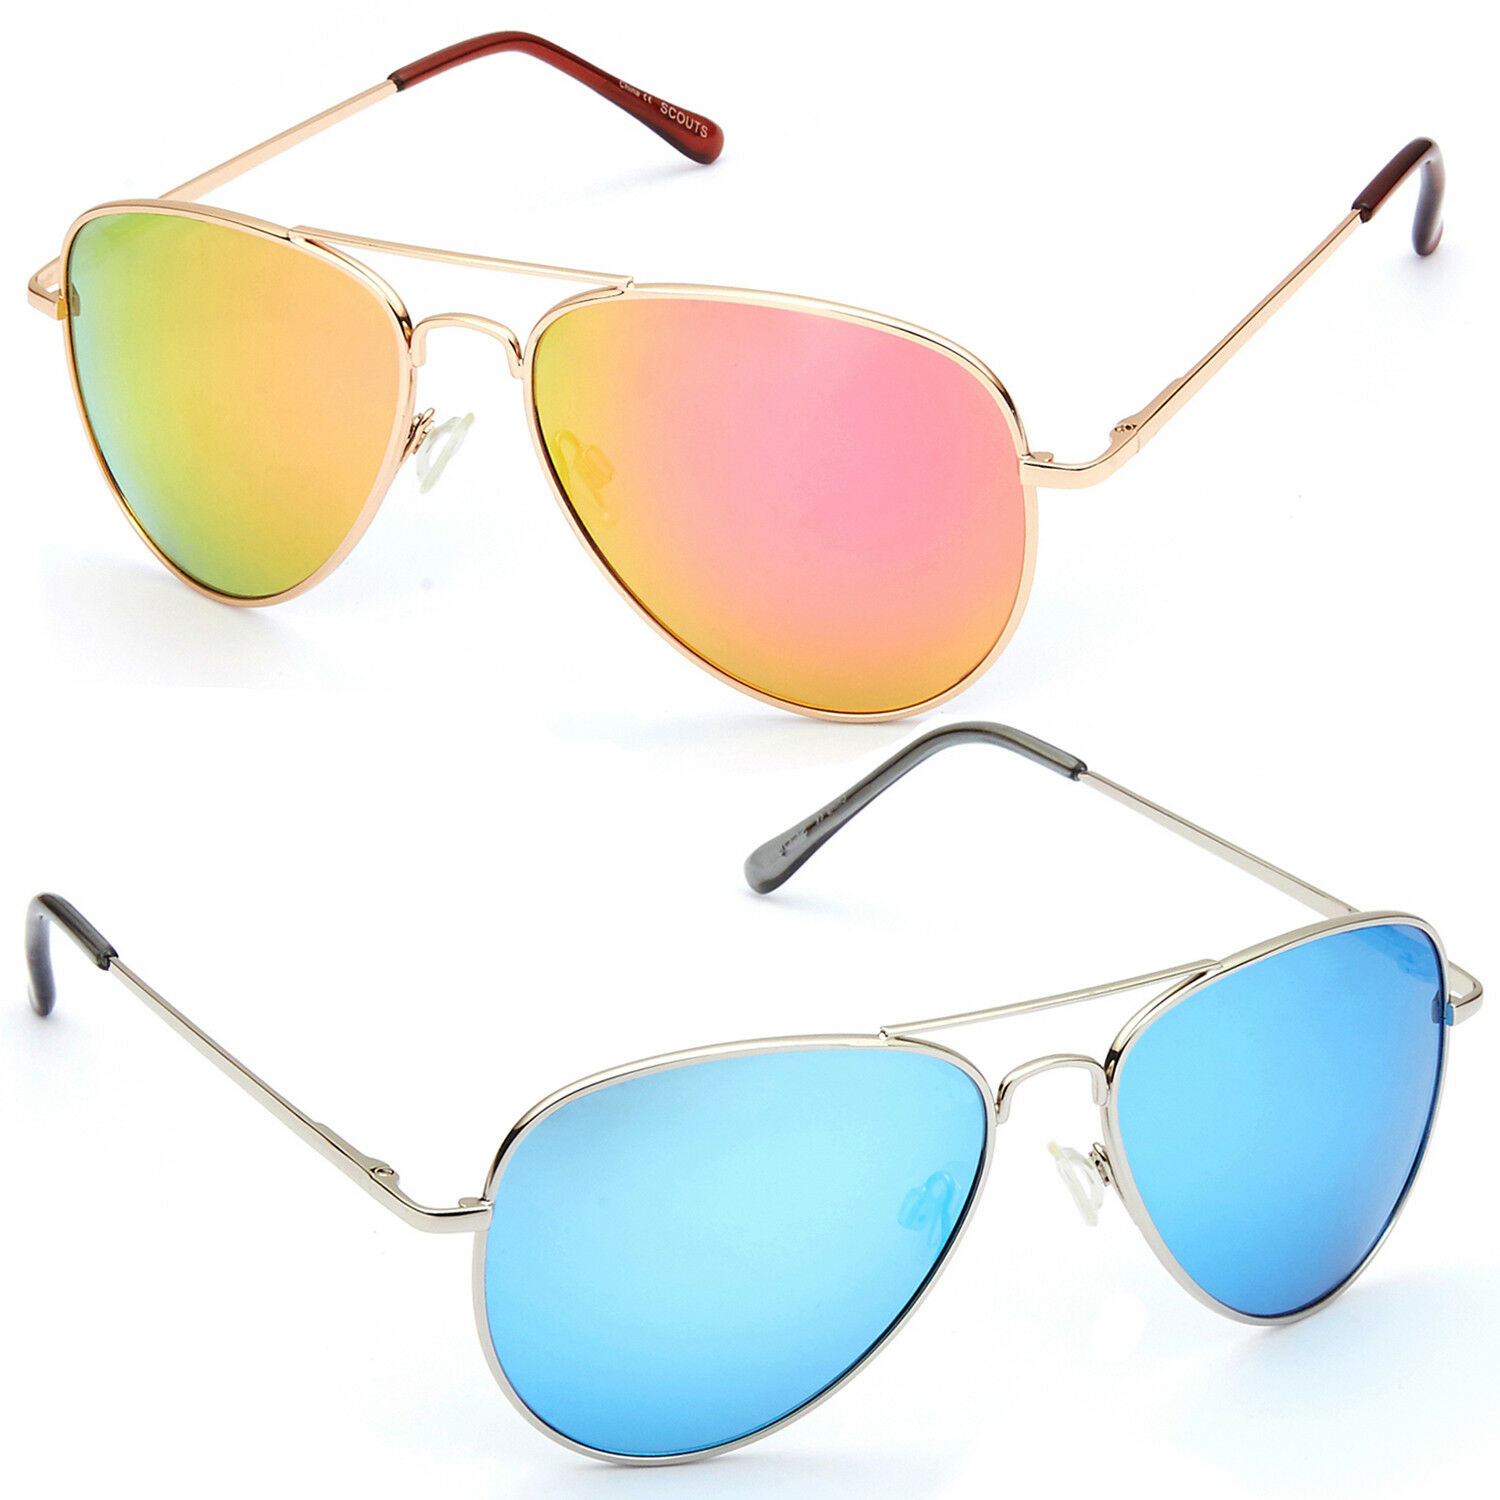 344b8746a27 Polarized Aviator Sunglasses for Women Men Vintage Sports Driving Mirrored